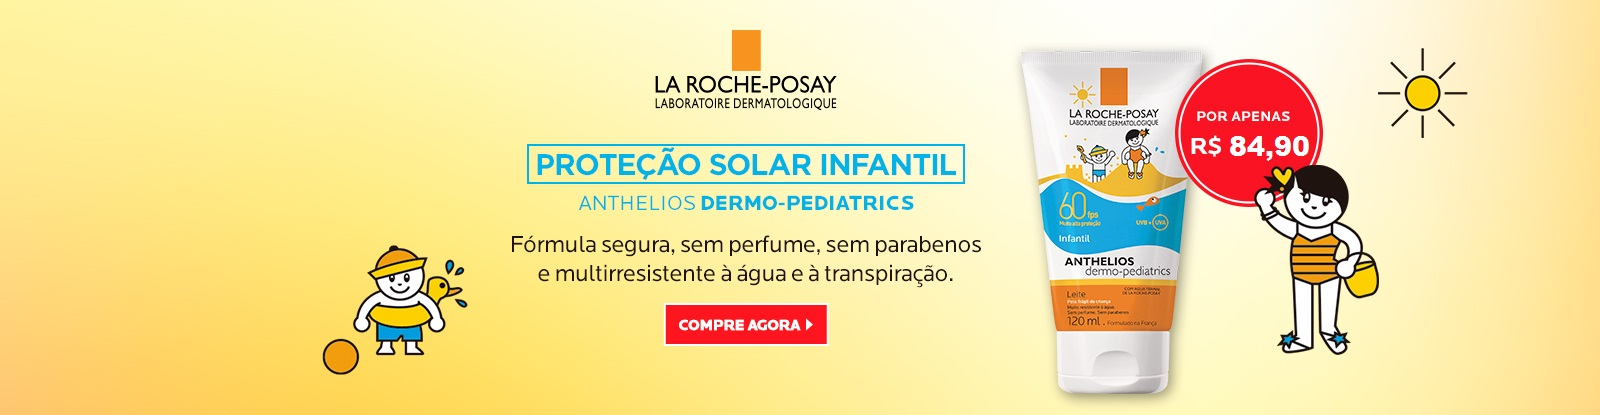 Anthelios Dermo Pediatrics